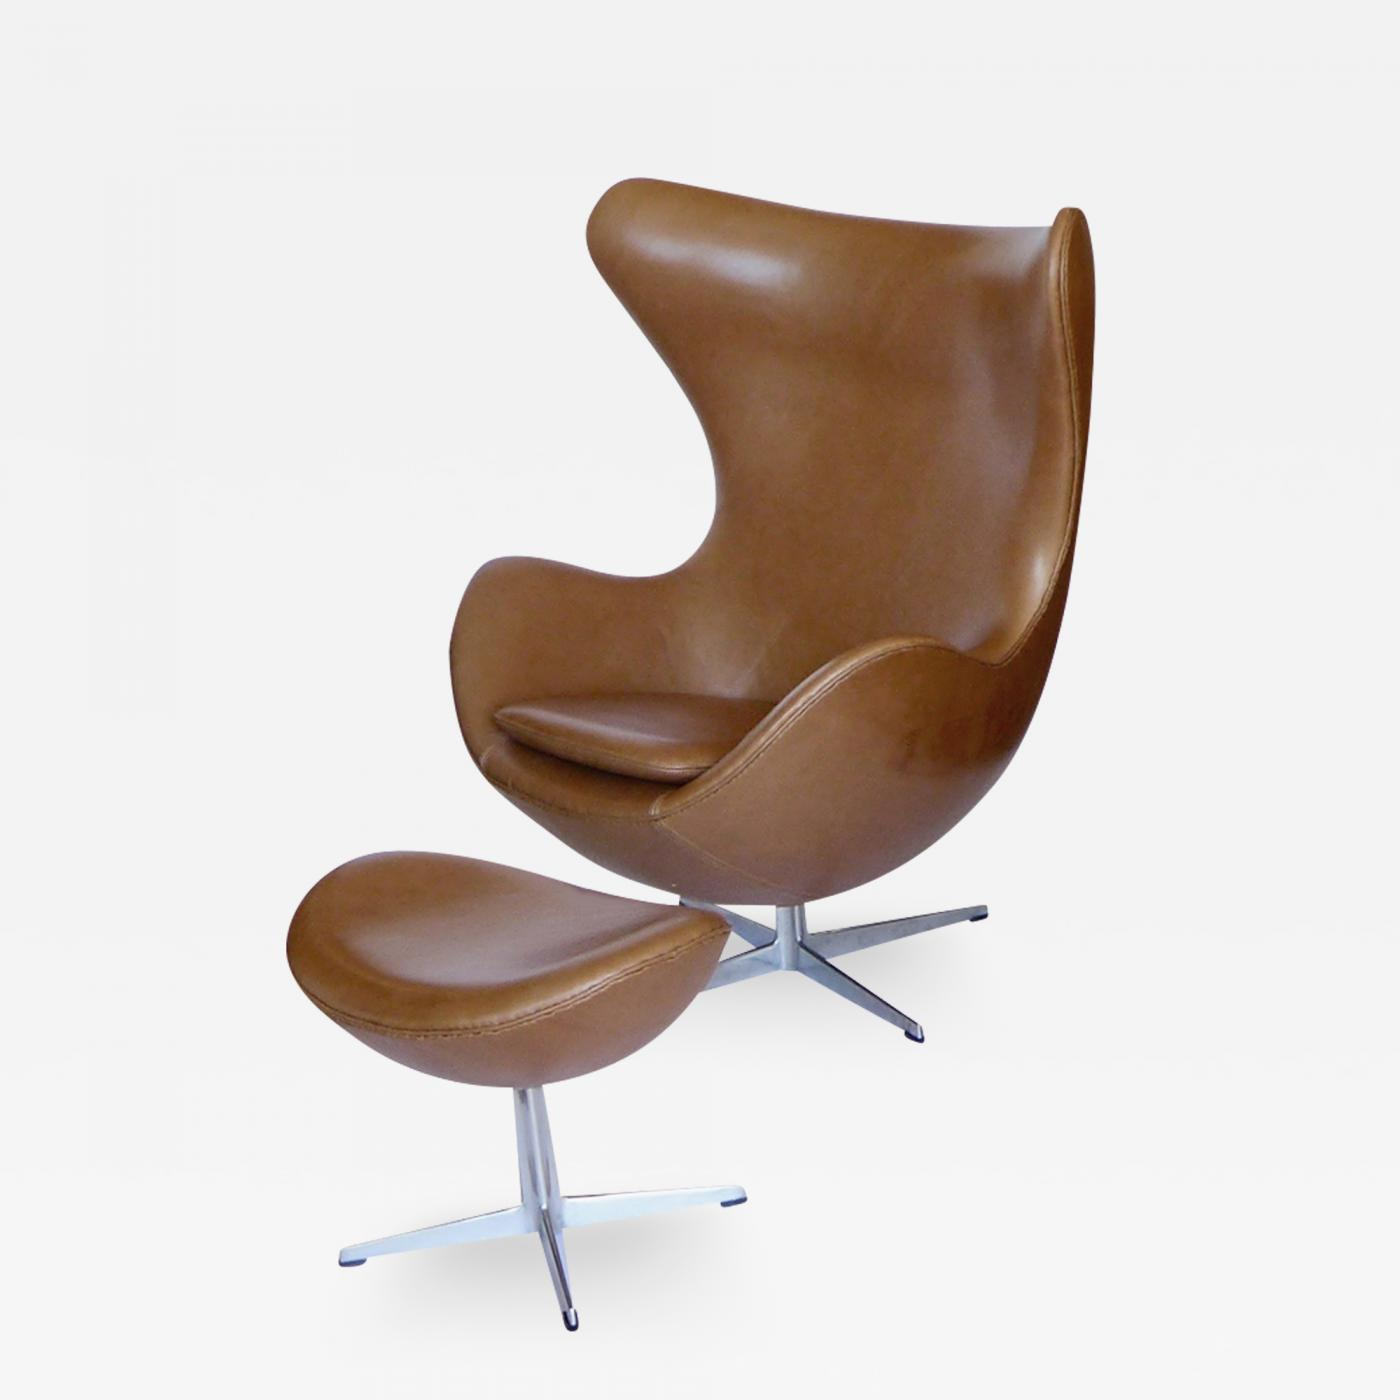 arne jacobsen original tan leather egg chair and ottoman by arne jacobsen. Black Bedroom Furniture Sets. Home Design Ideas